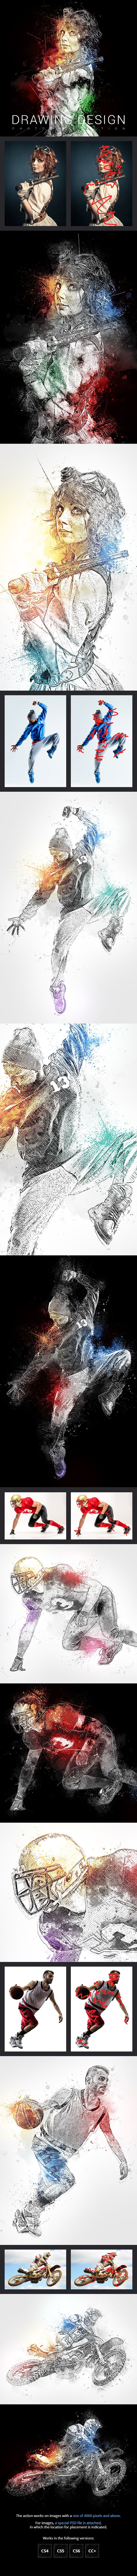 Drawing Design Photoshop Action — Photoshop ATN #splash #bright • Available here ➝ https://graphicriver.net/item/drawing-design-photoshop-action/20986902?ref=pxcr